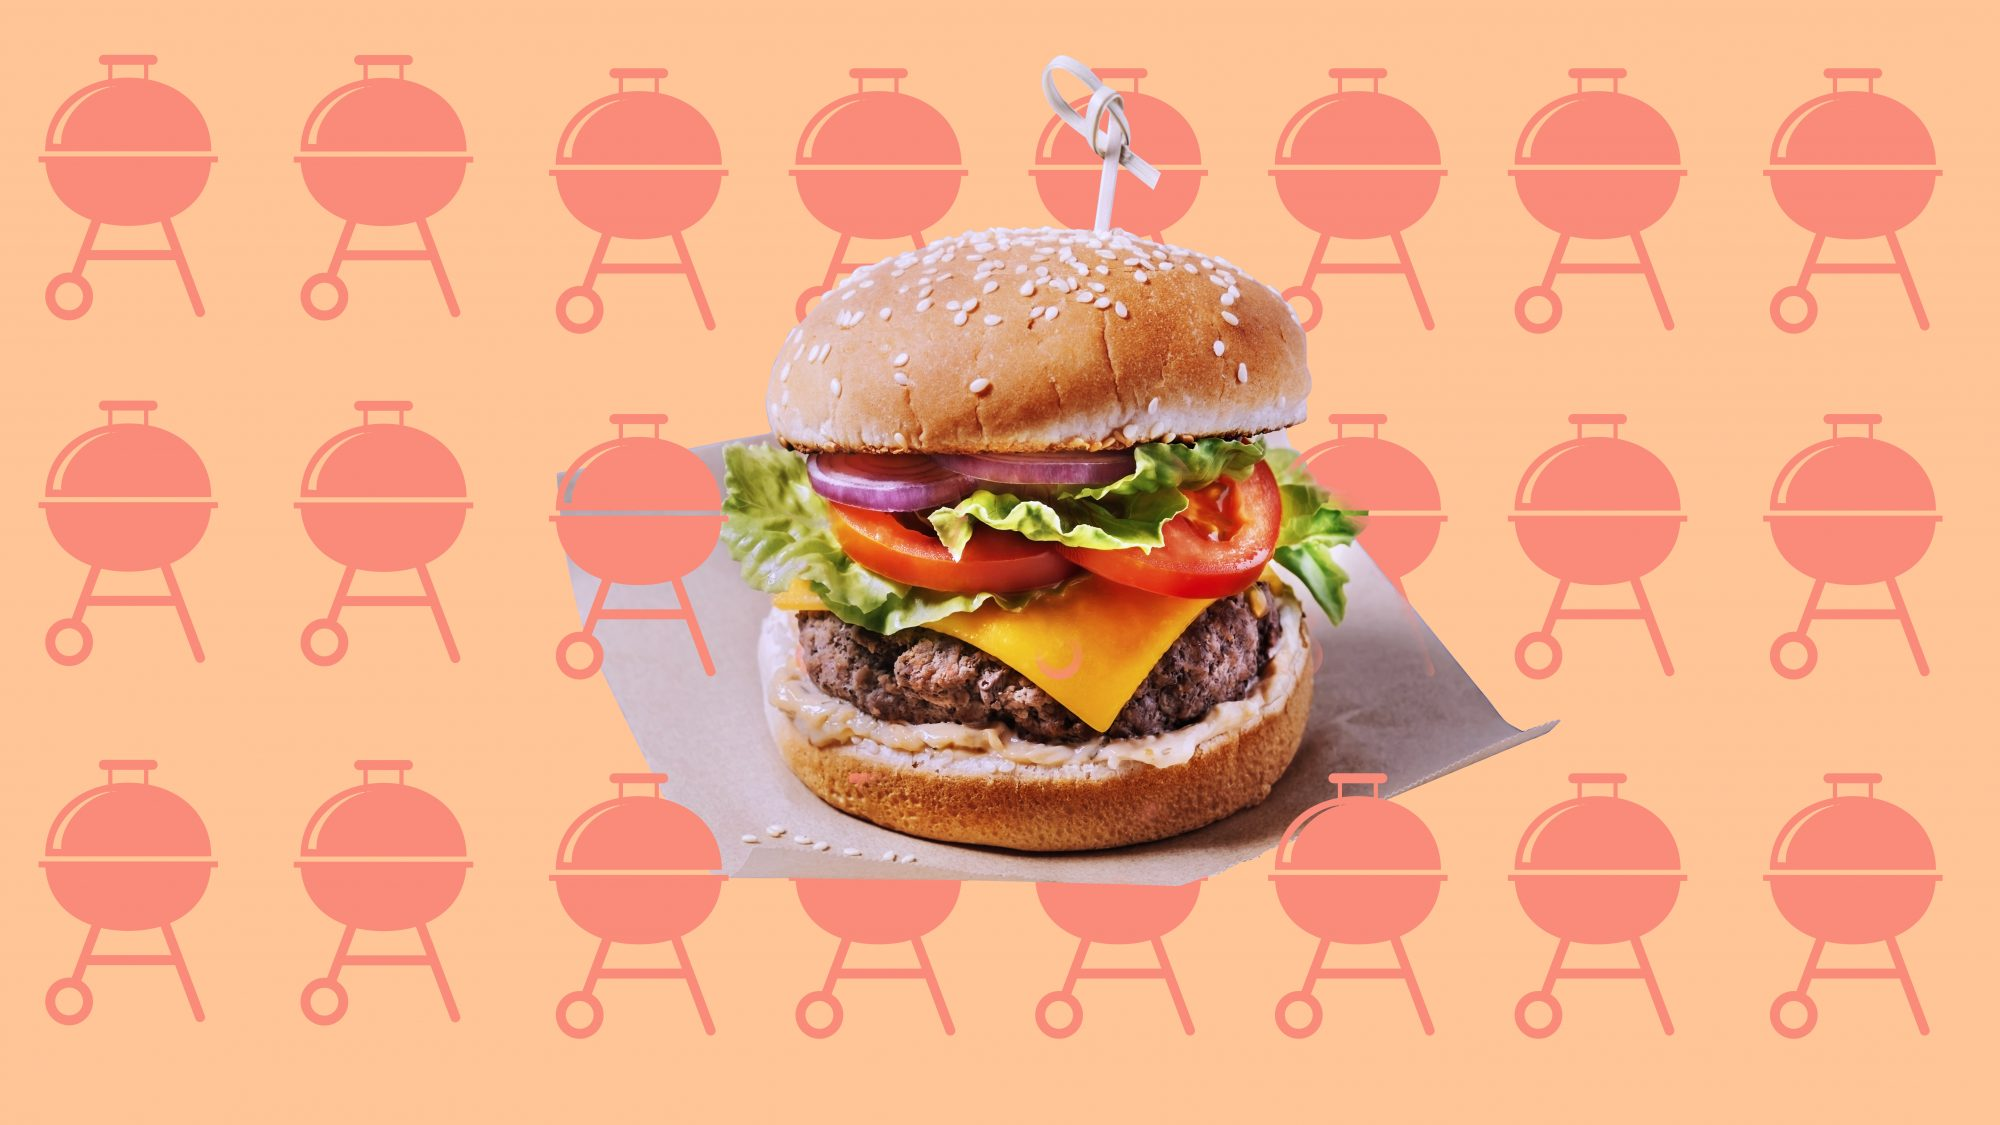 6 Simple Steps to Grilling the Best, Juiciest Burgers Ever